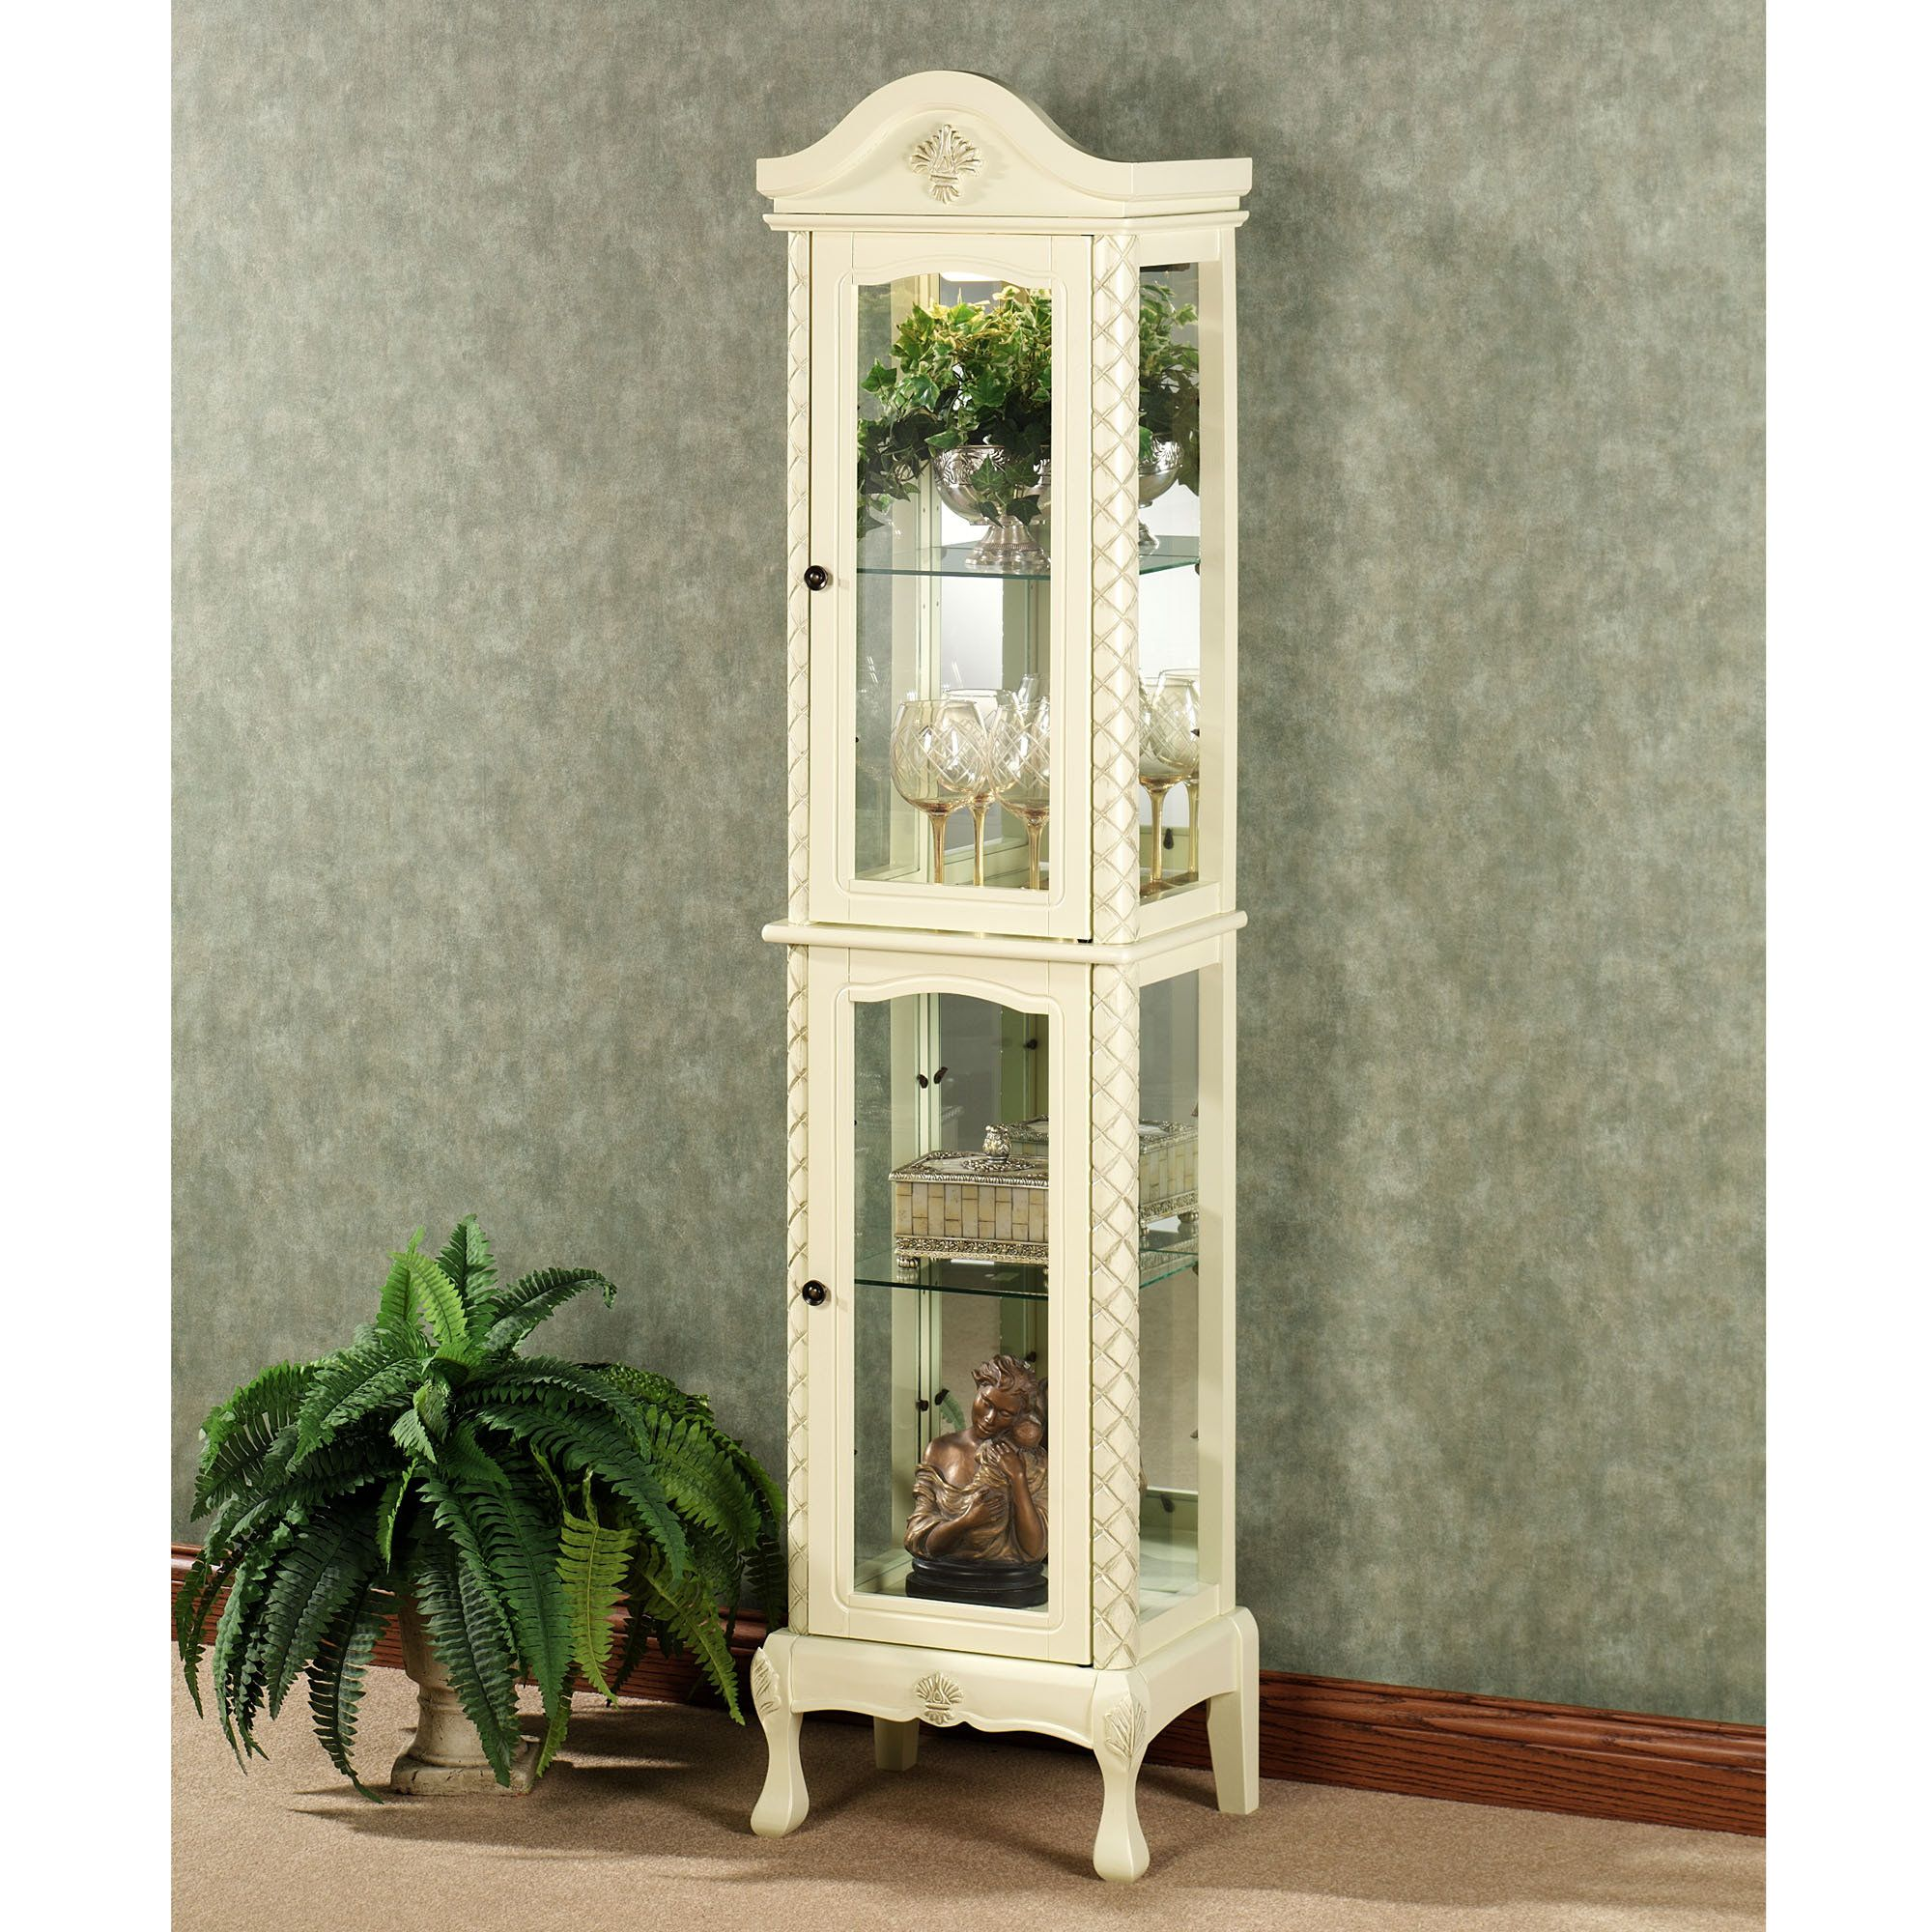 Captivating Winchell Curio Cabinet Ivory